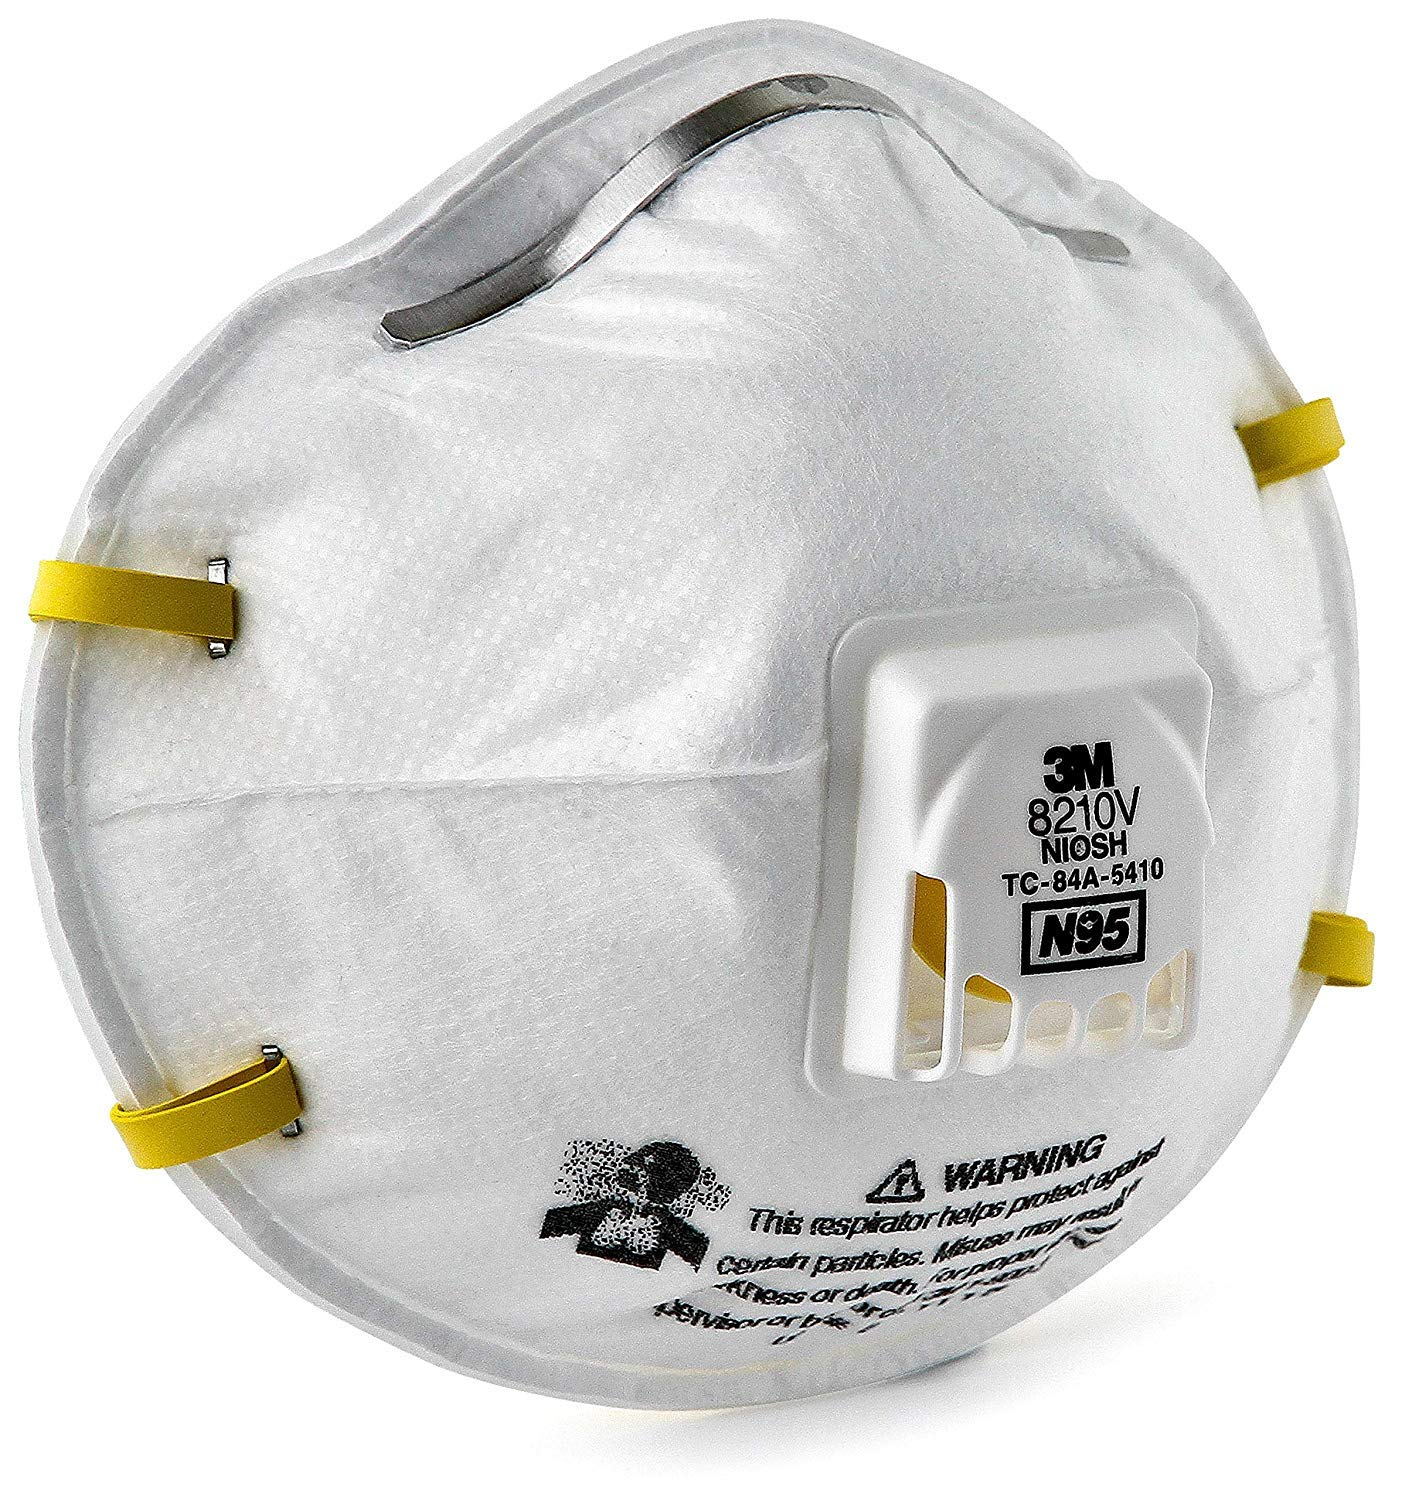 3M Particulate Respirator 8210V, N95 Respiratory Protection 80 each/case by 3M